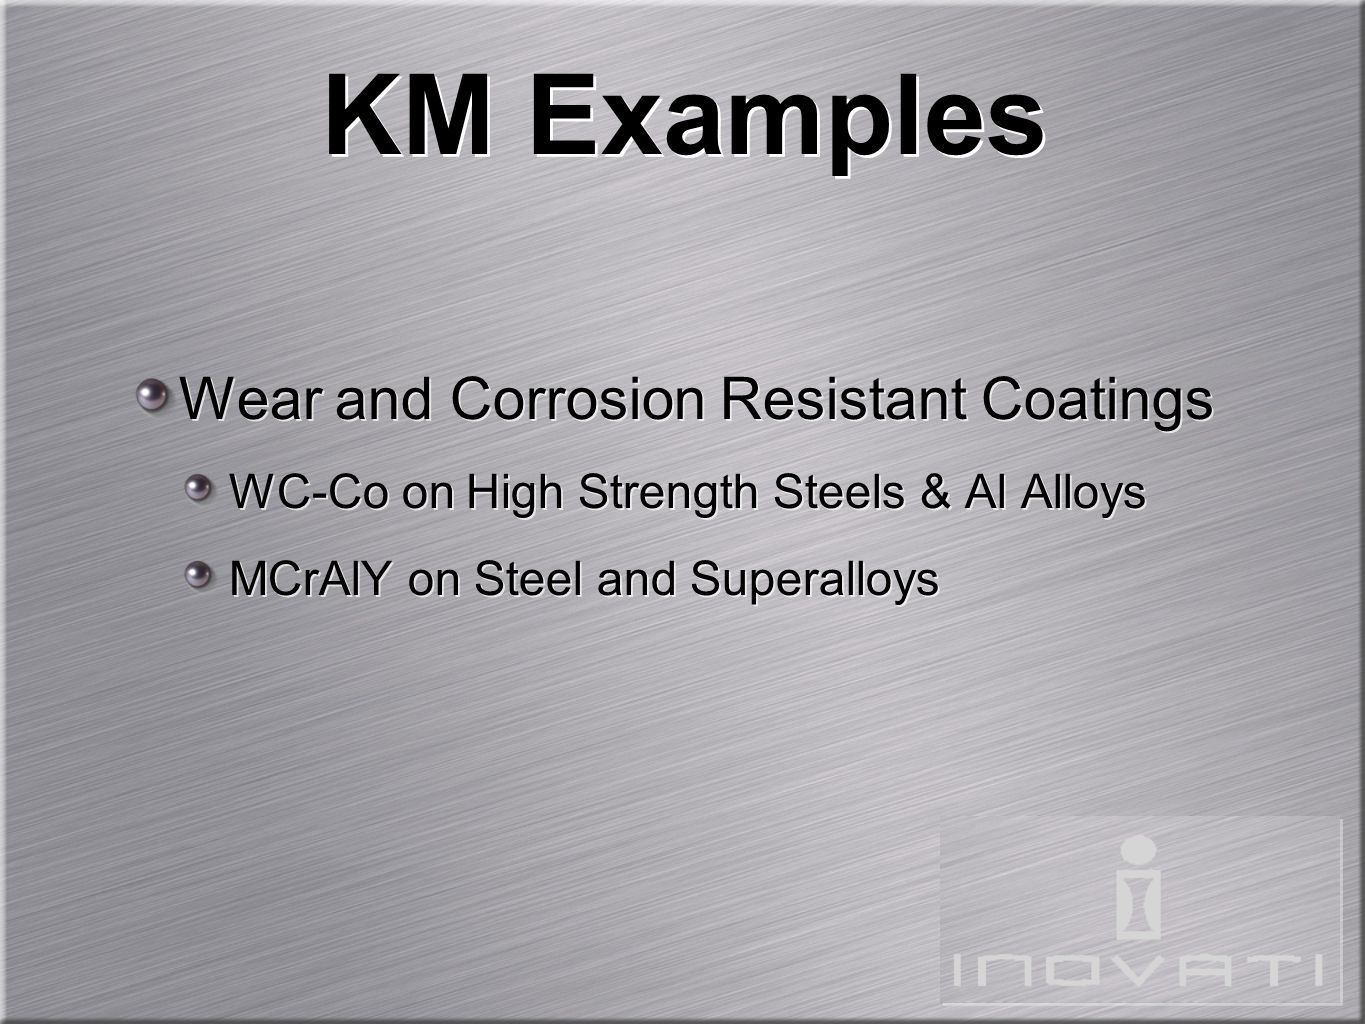 KM Examples Wear and Corrosion Resistant Coatings